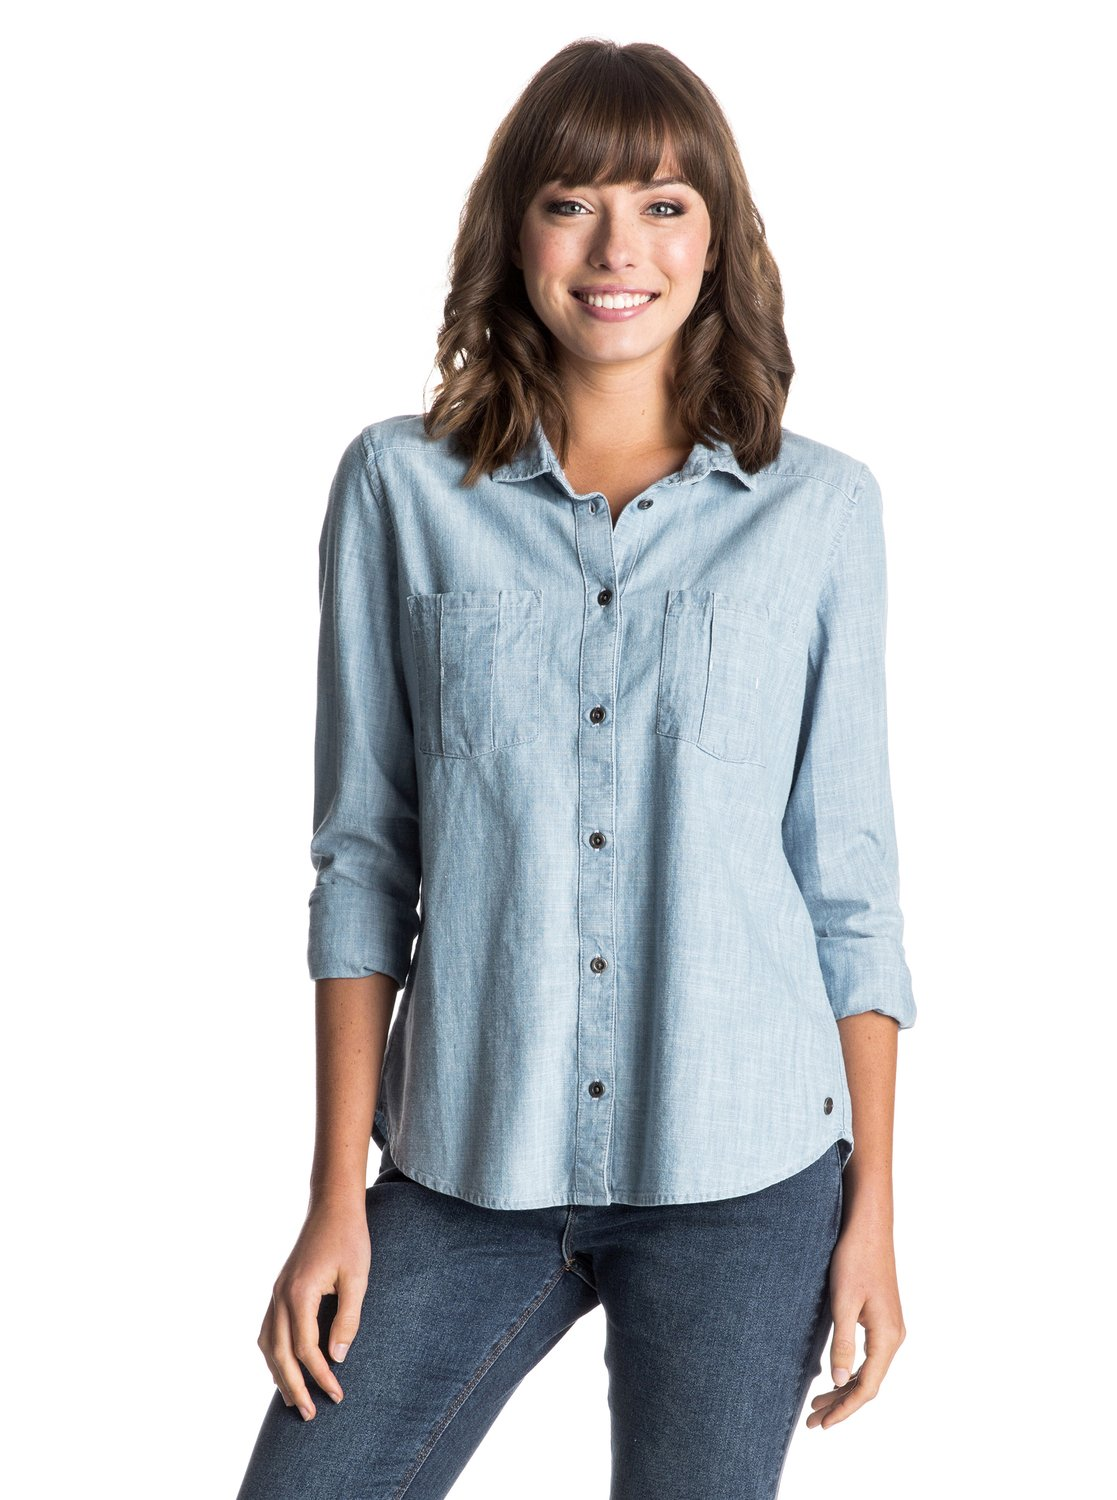 ad979ae9e7c Girl Blue Jean Shirt – EDGE Engineering and Consulting Limited